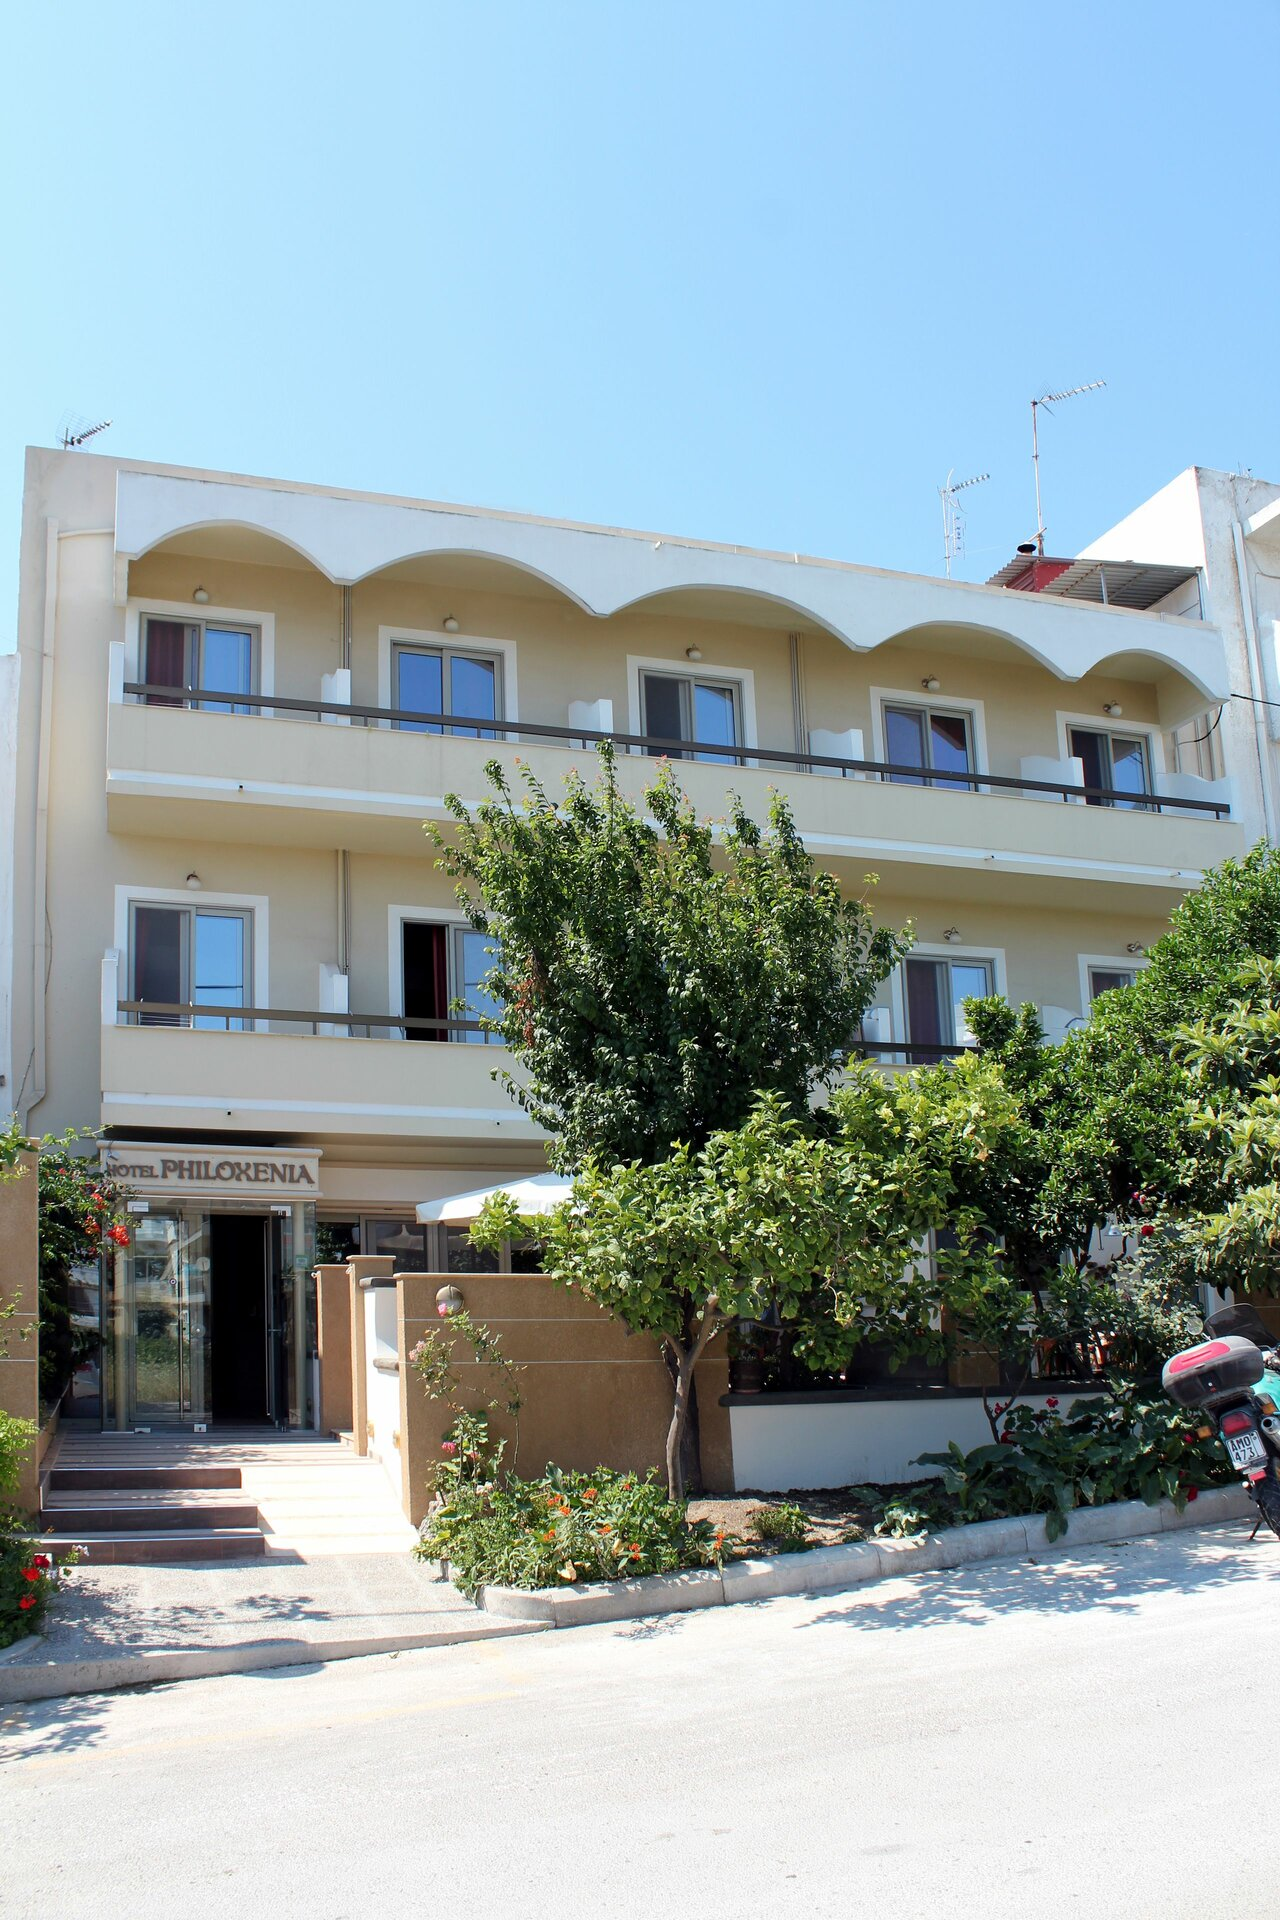 Philoxenia Hotel And Studios